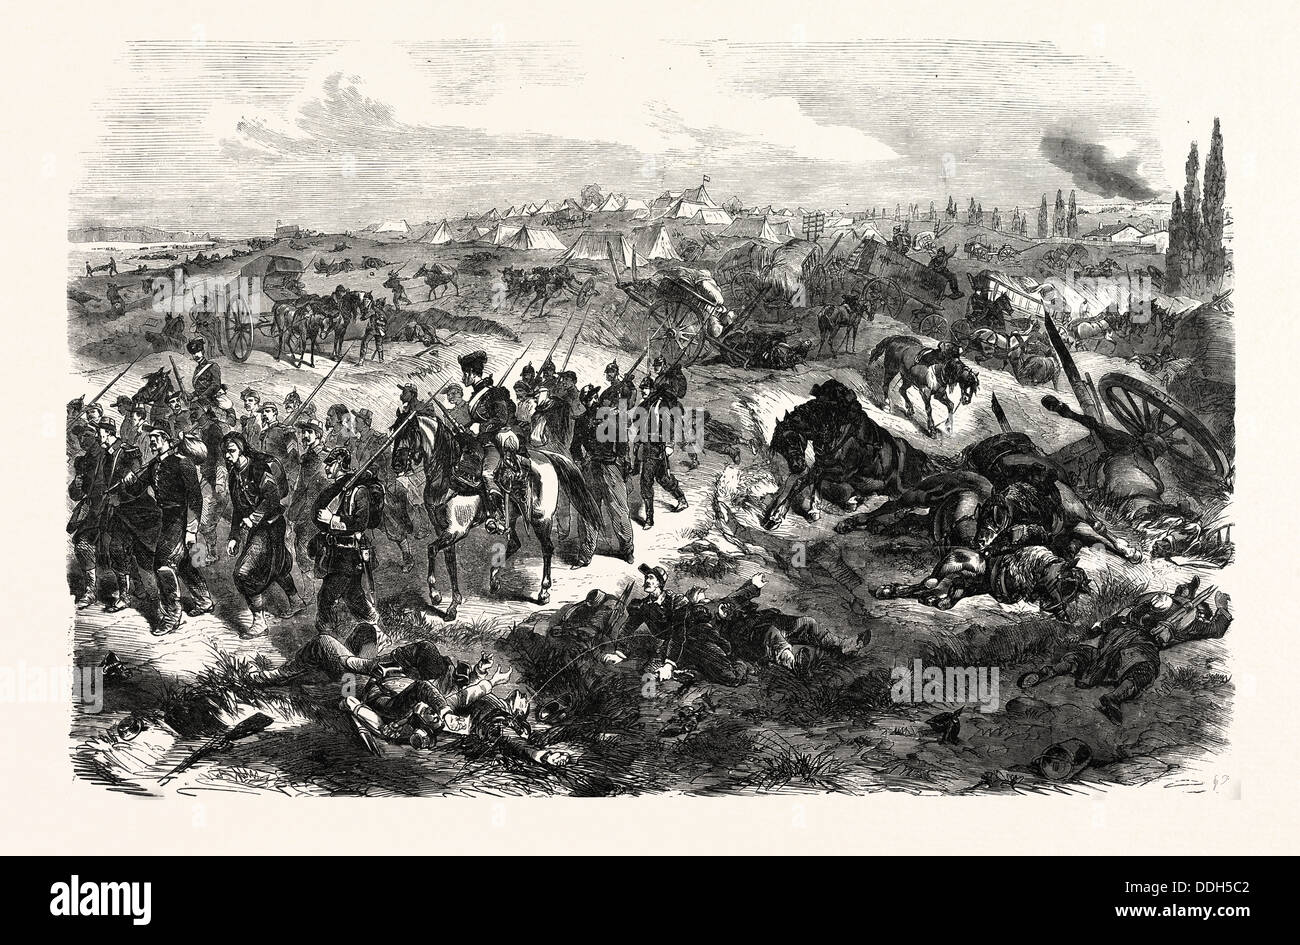 FRANCO-PRUSSIAN WAR: FRENCH CAMP NEAR BEAUMONT, TAKEN BY 4th GERMAN CORPS 20 AUGUST 1870 - Stock Image